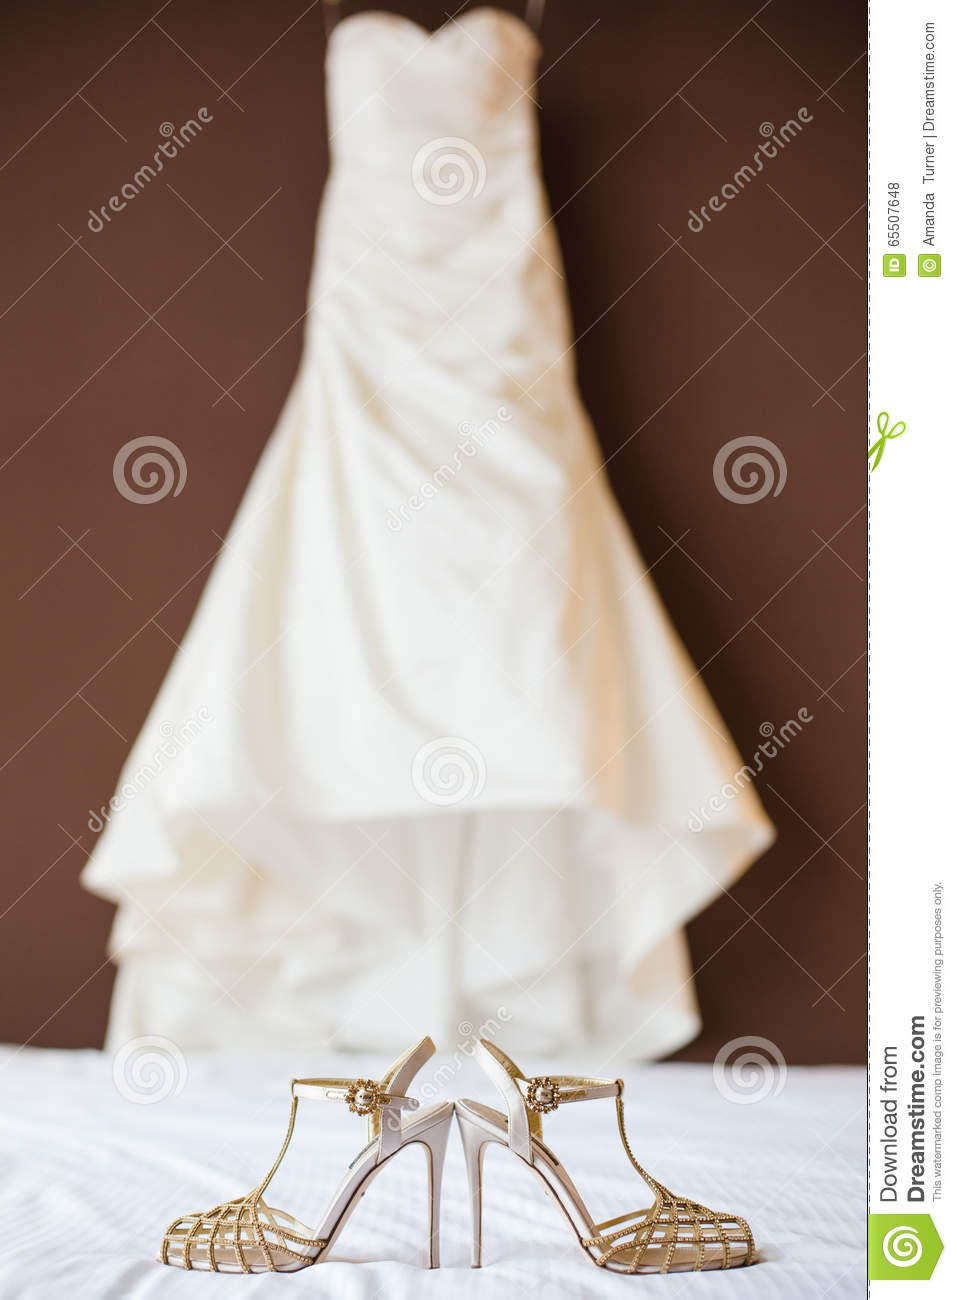 335e71219f94 Wedding Shoes And Wedding Dress Stock Photo - Image of hanging ...